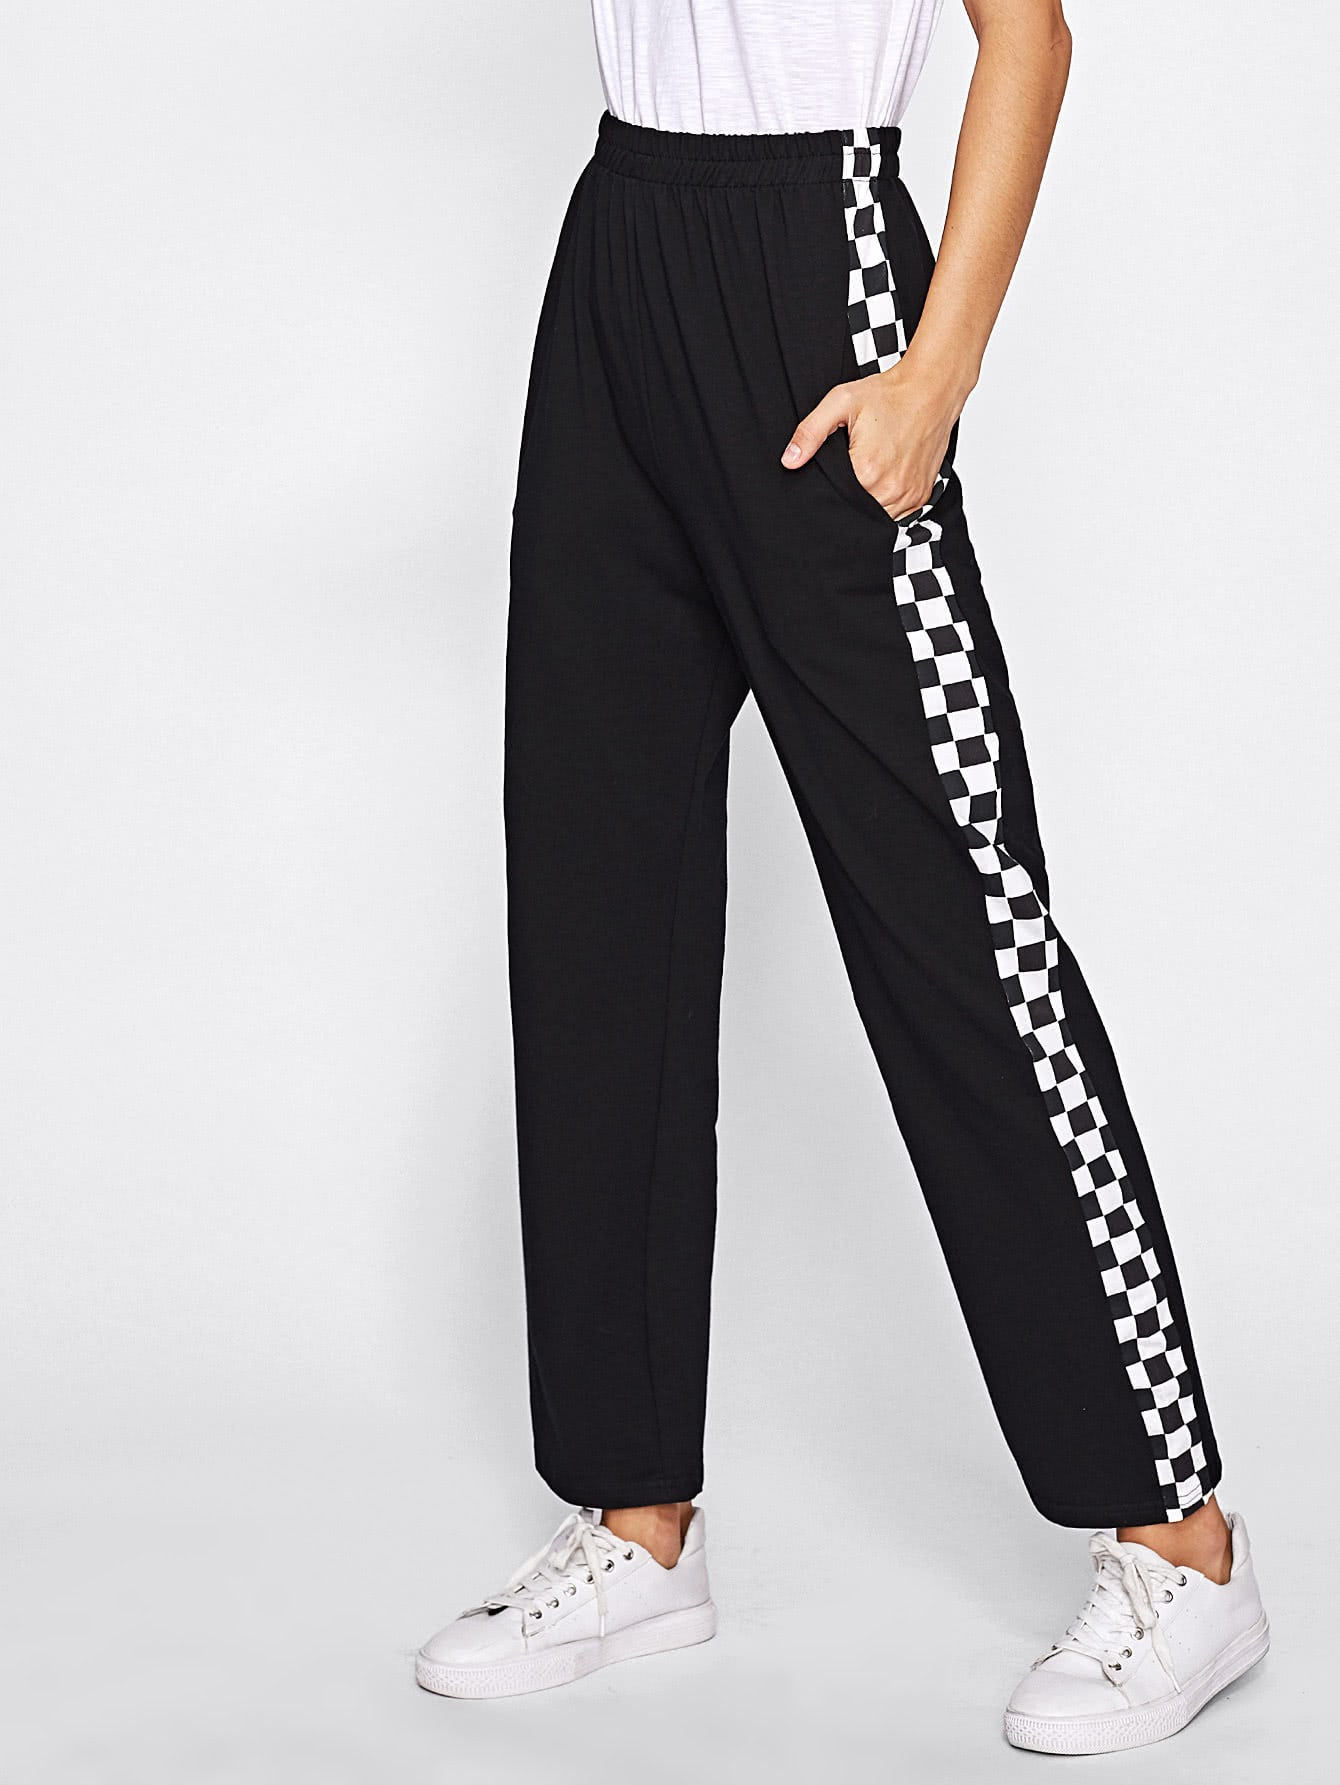 Side Checked Pants Emmacloth Women Fast Fashion Online